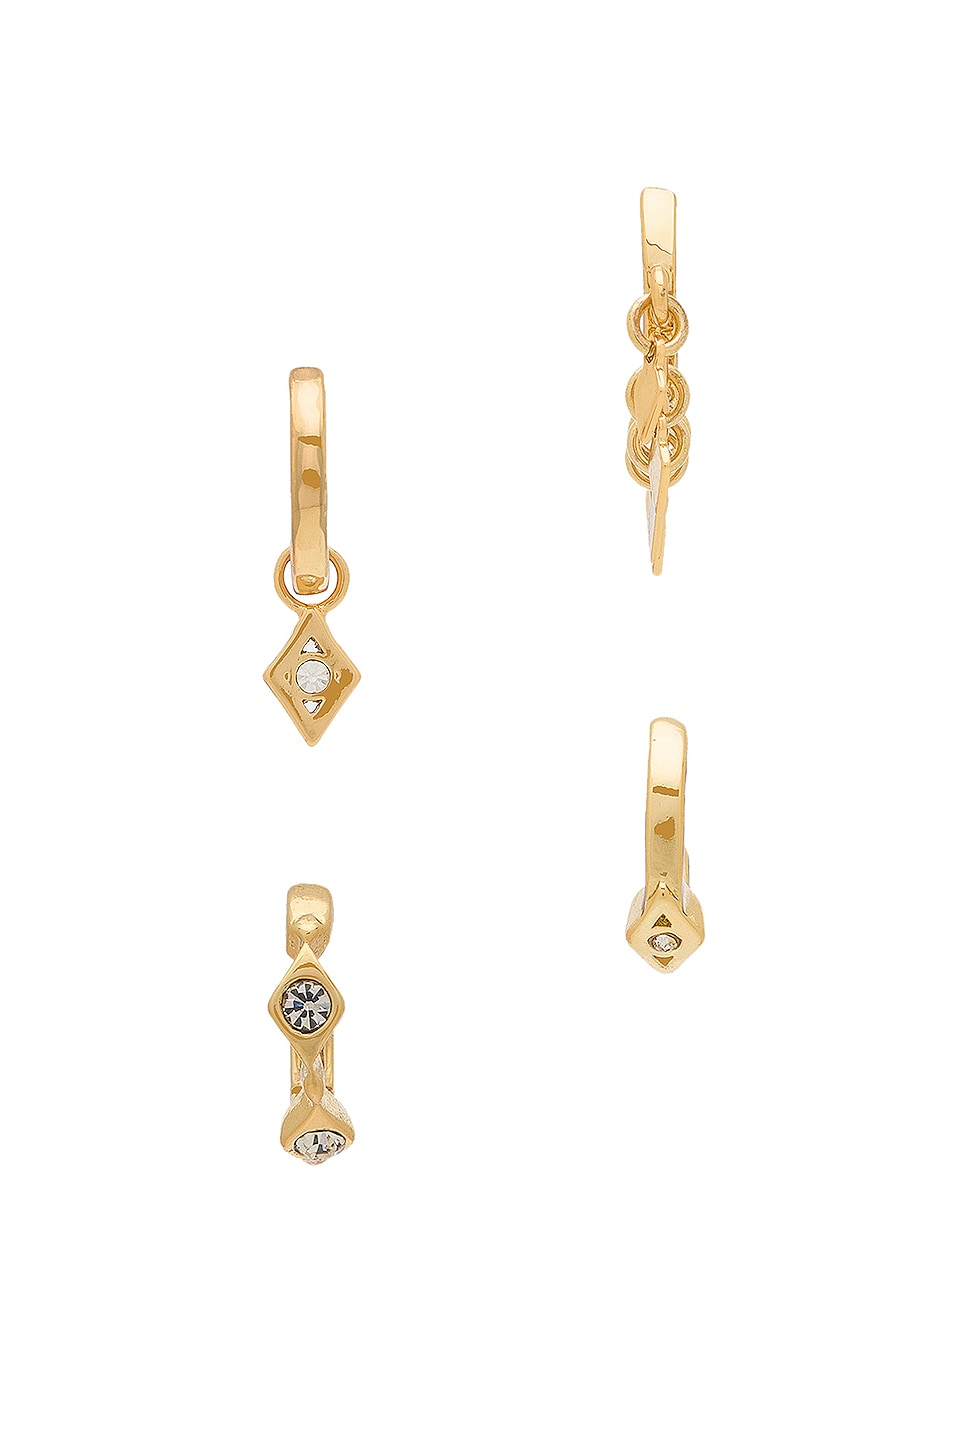 pin rose diamond gold earrings luv earring set aj kite